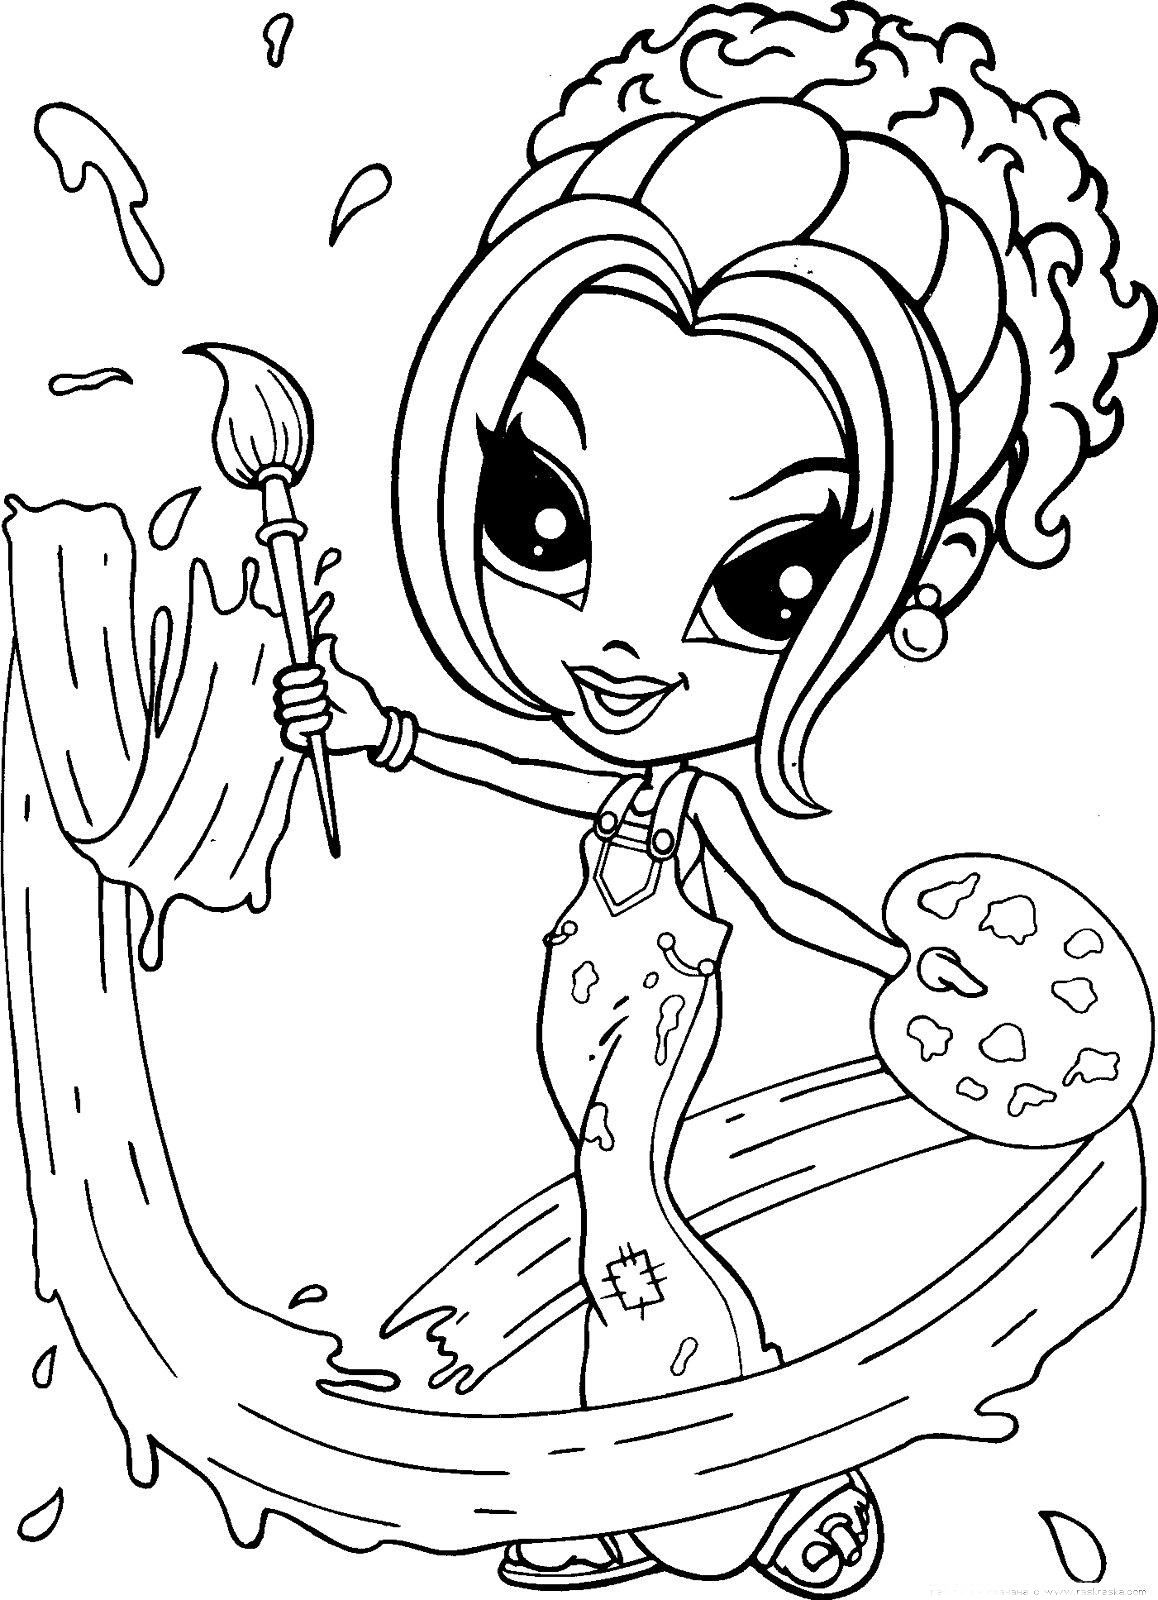 Paint pages to color online - Lisa Frank Coloring Pages To Download And Print For Free